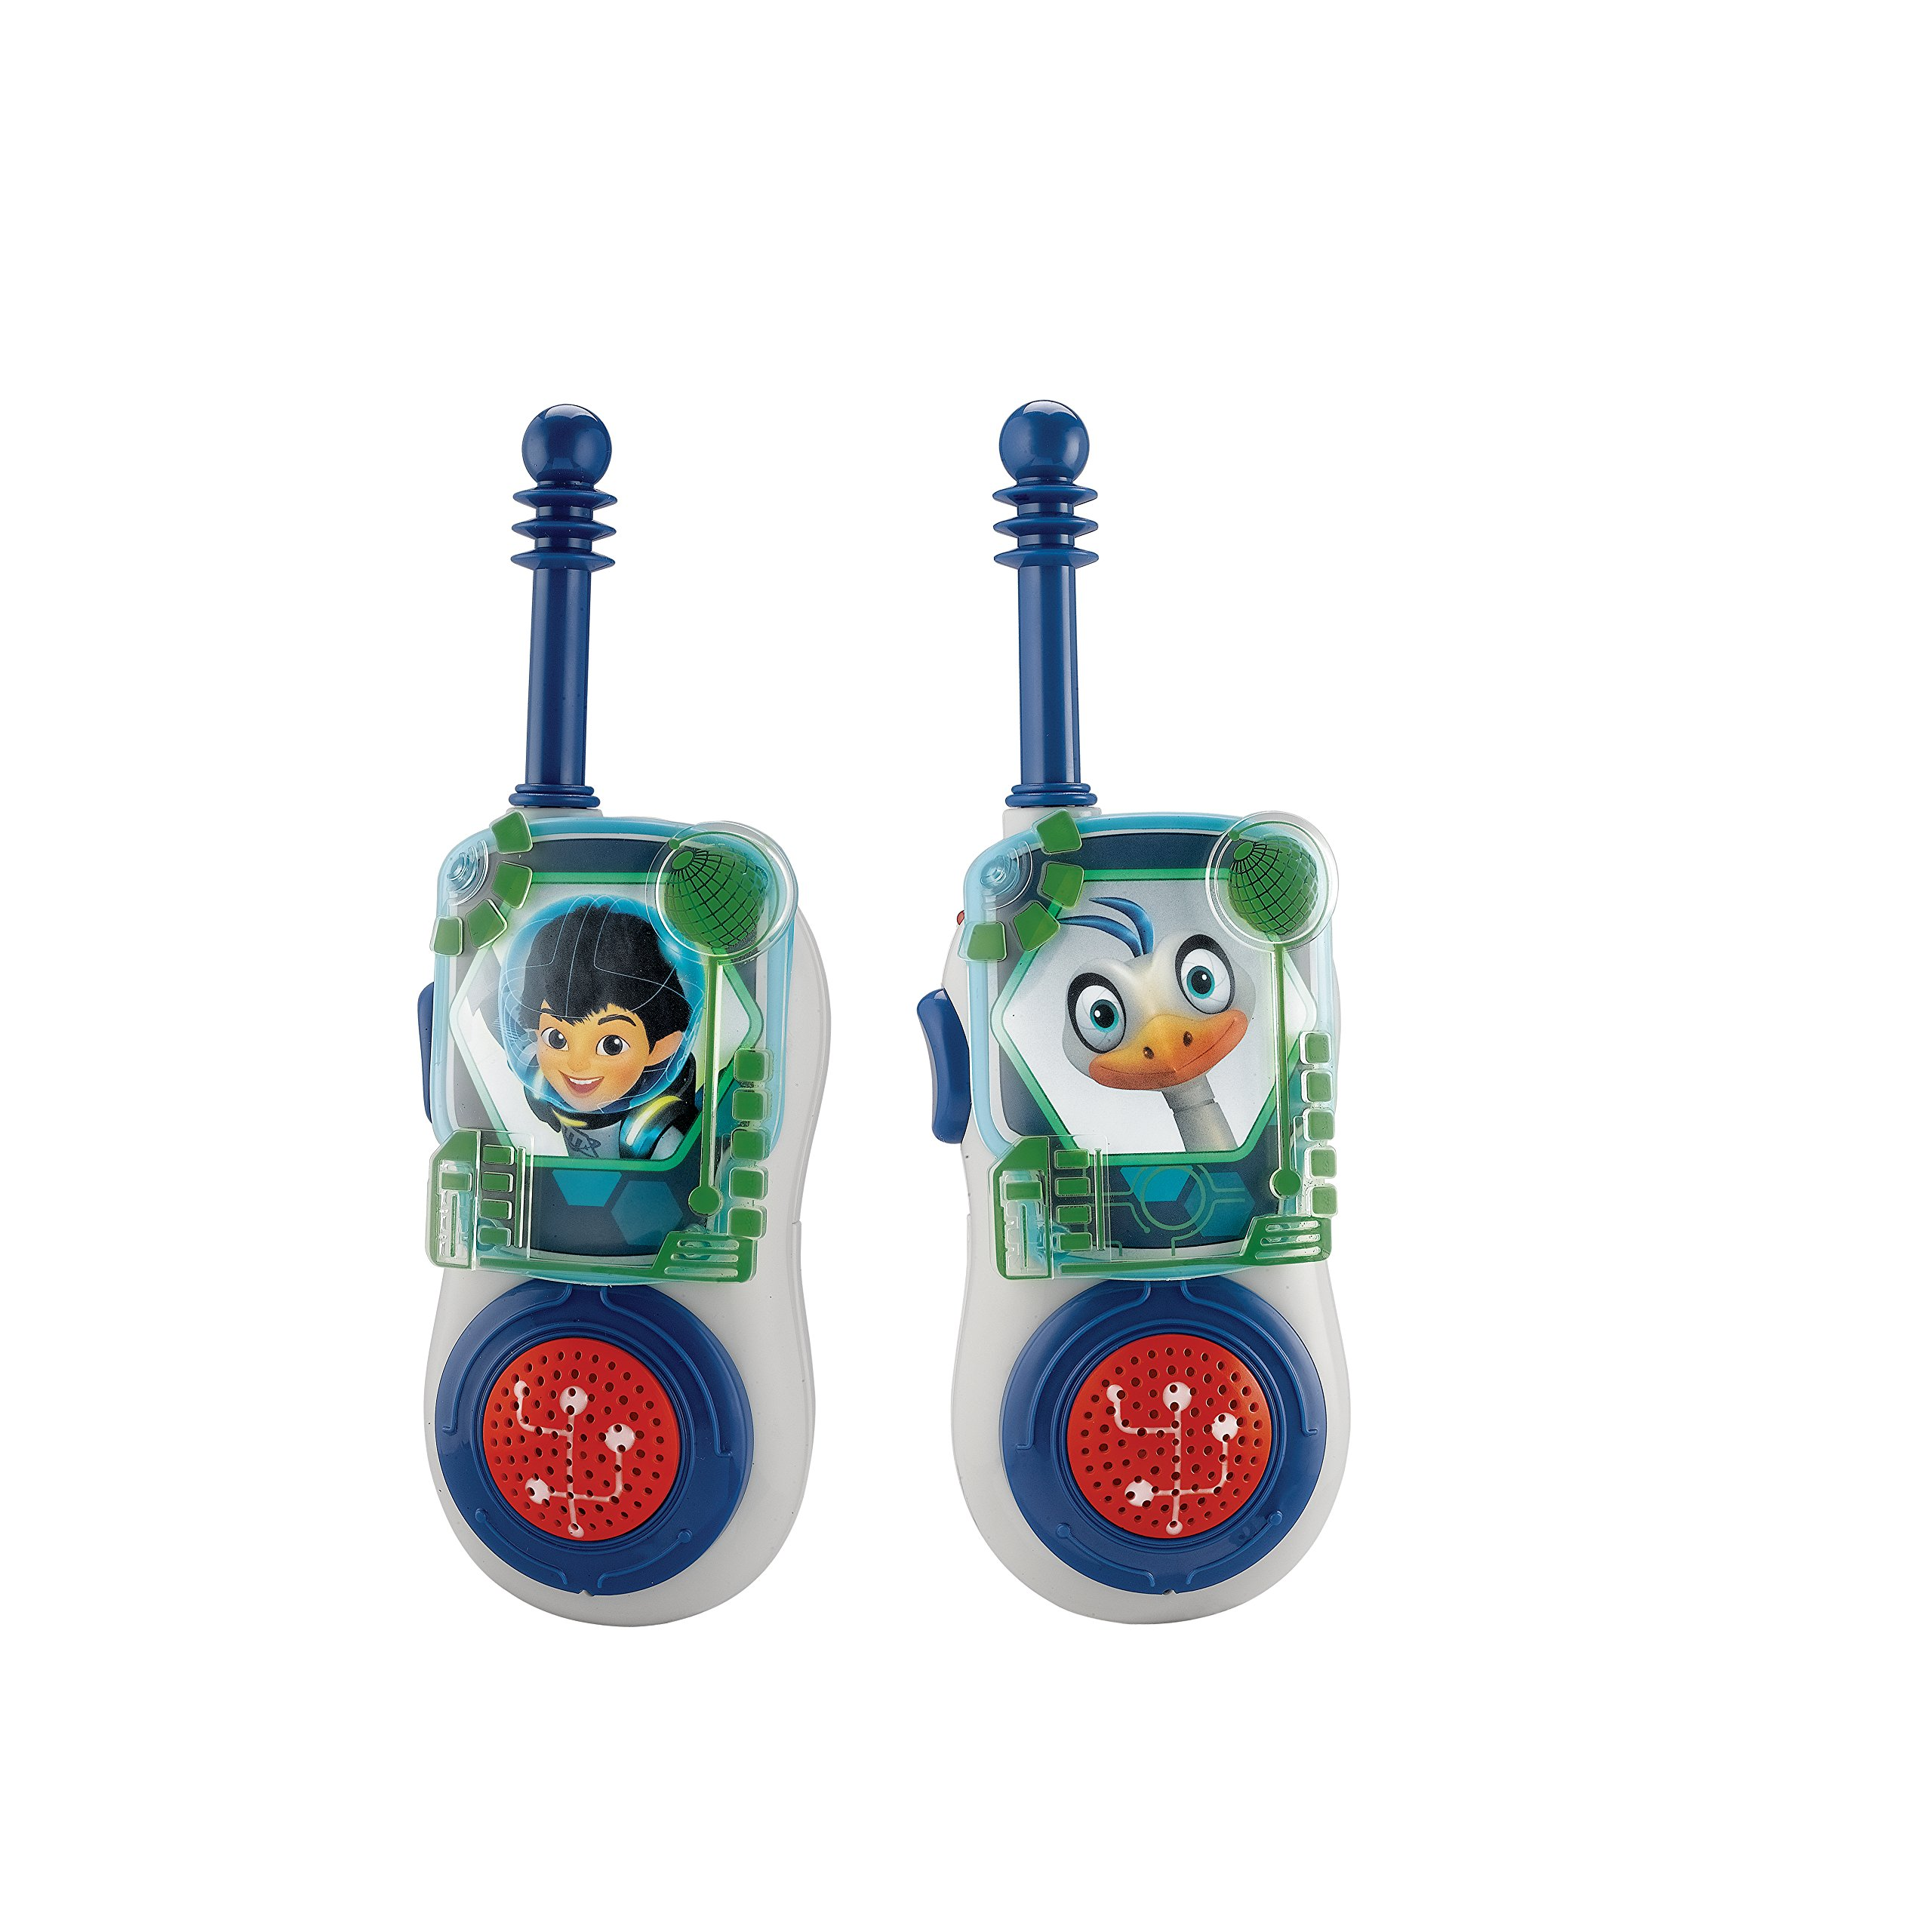 Miles from Tomorrowland FRS Walkie Talkies by Miles From Tomorrowland (Image #1)